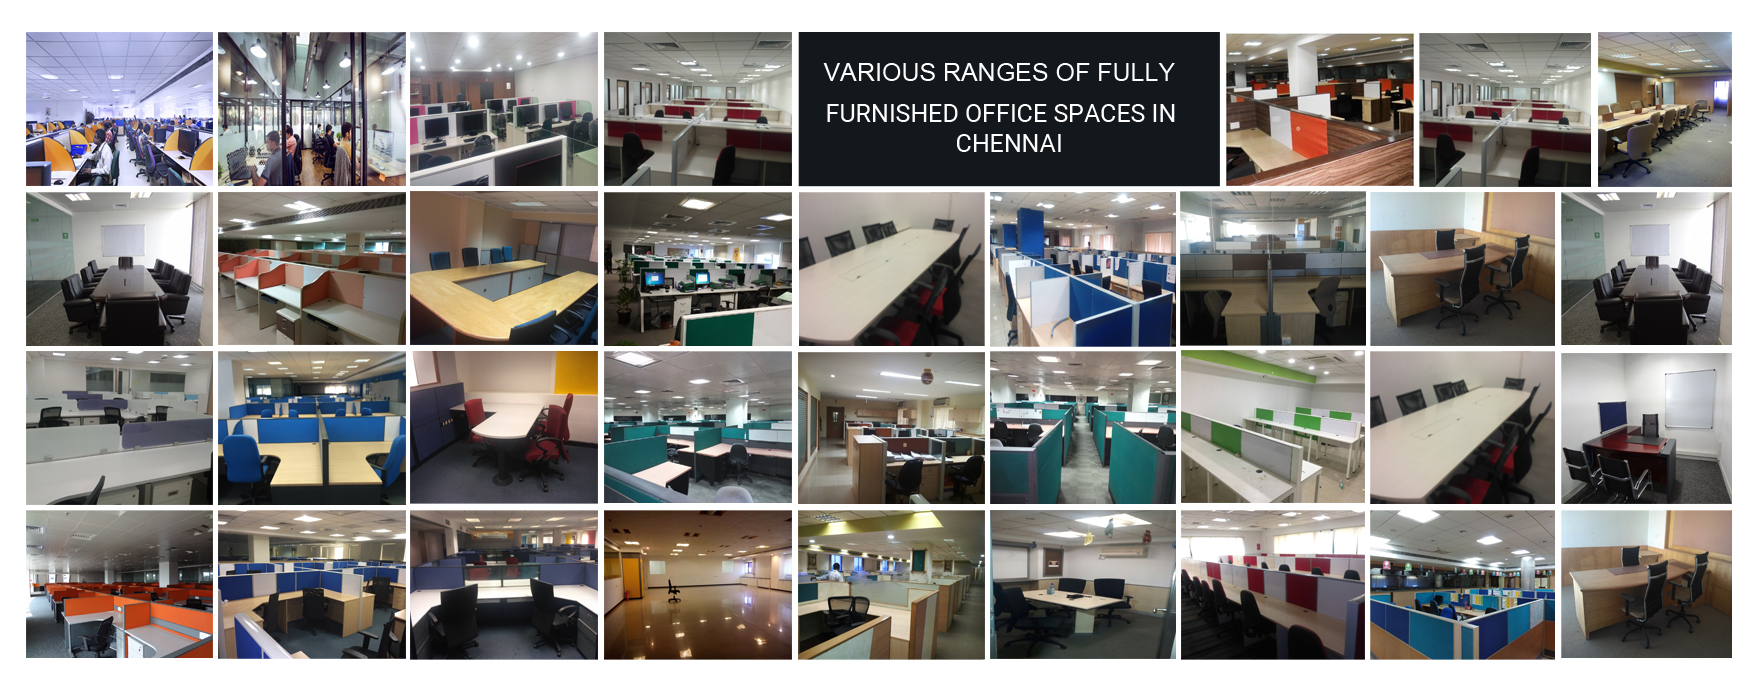 office for rent in chennai